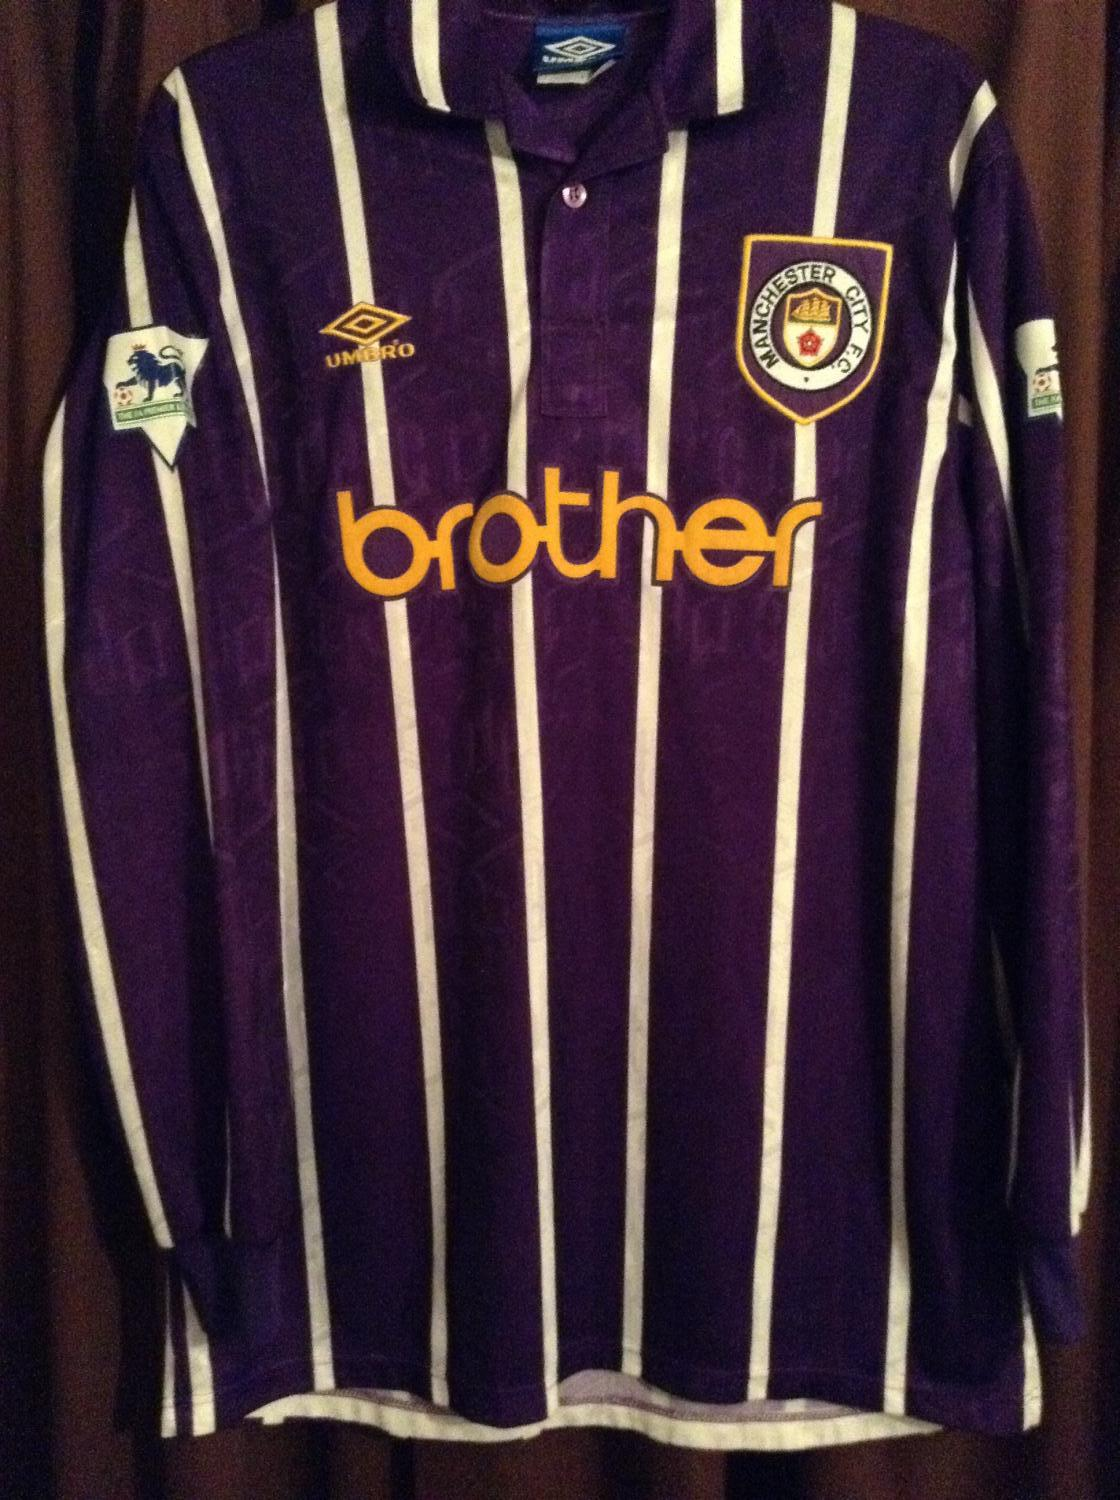 Manchester City Away football shirt 1992 - 1994. Sponsored by Brother